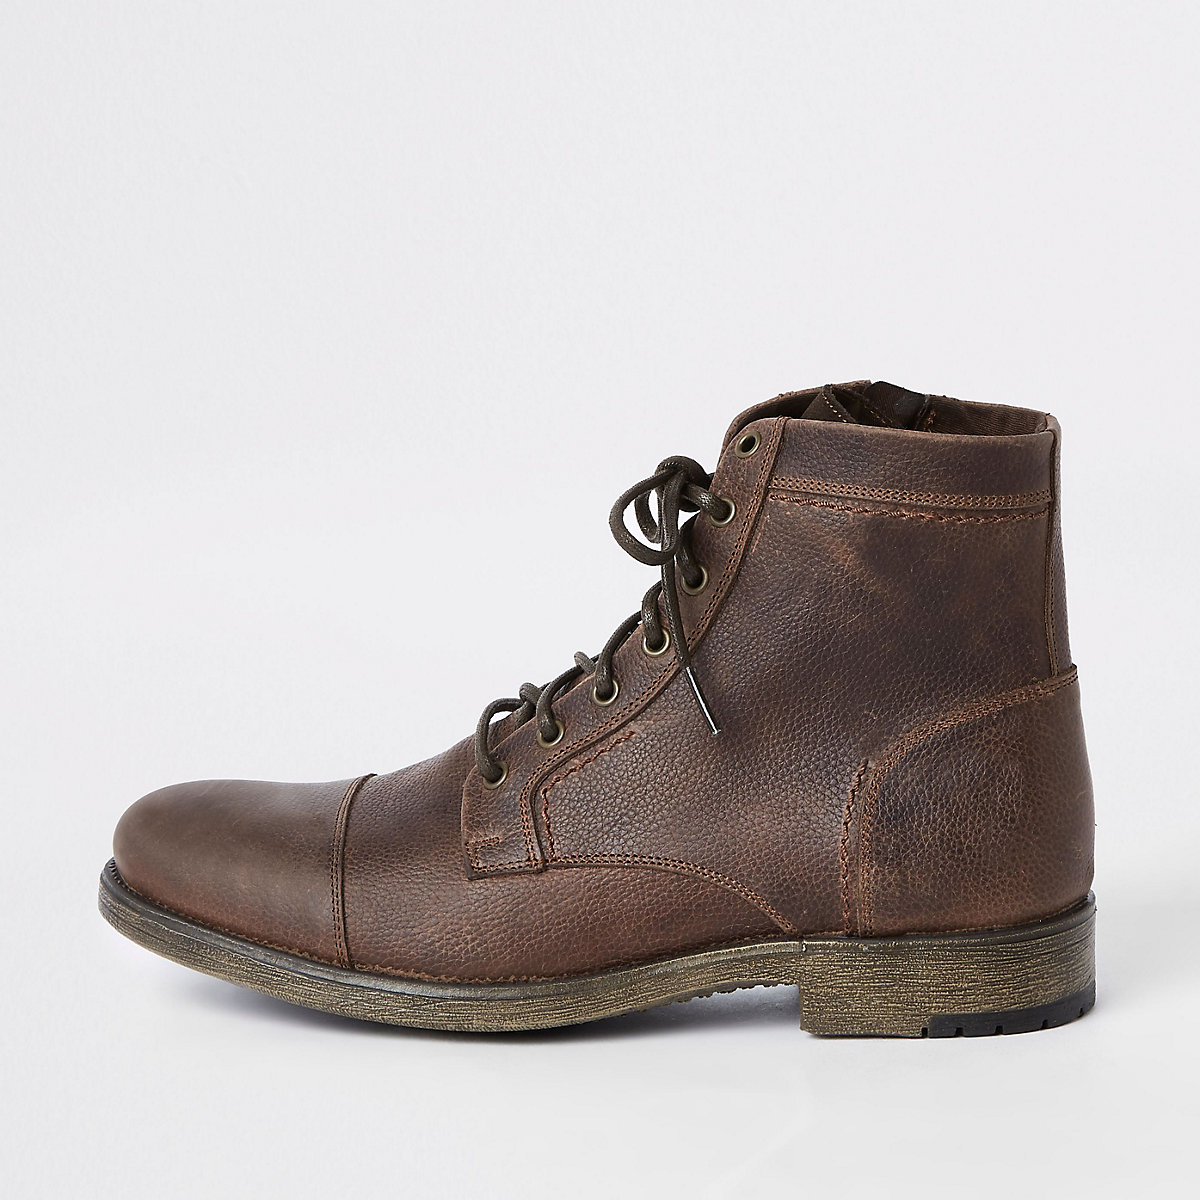 Dark brown tumbled leather lace-up boots